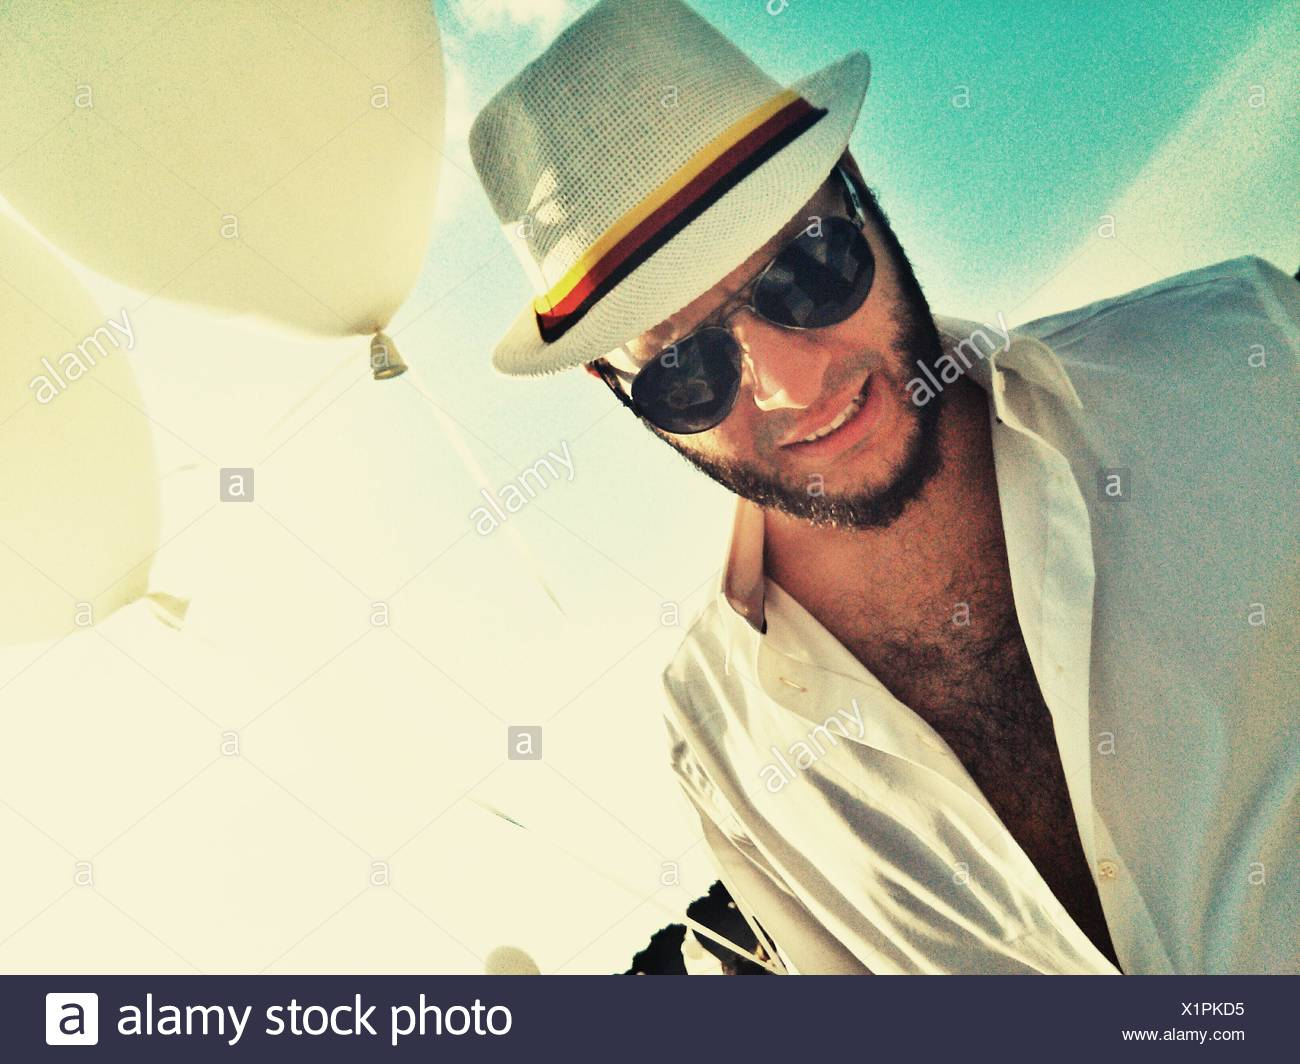 Fashionable Man Wearing Sunglasses And Hat - Stock Image